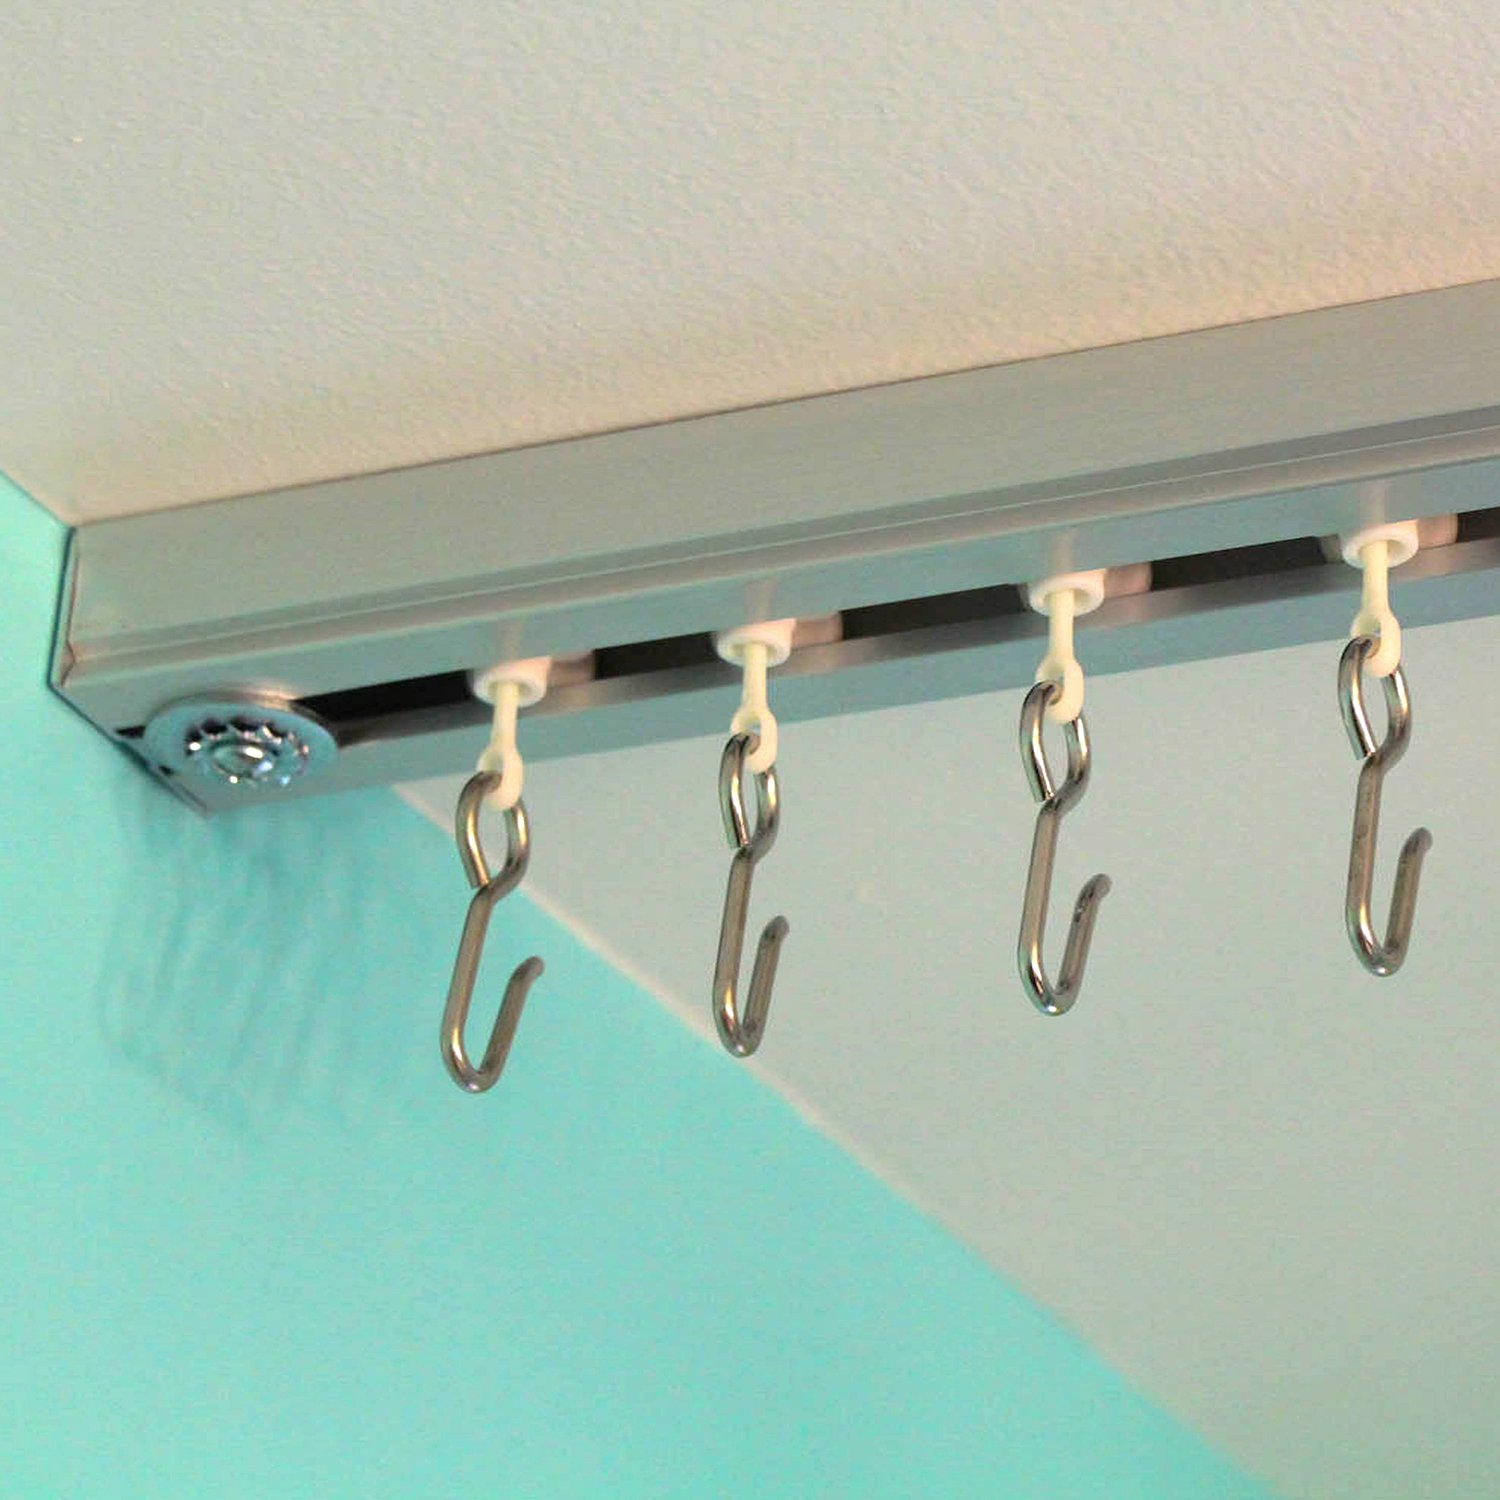 RoomDividersNow Ceiling Track Set - Large, For Spaces 12ft - 18ft Wide (Silver) by RoomDividersNow